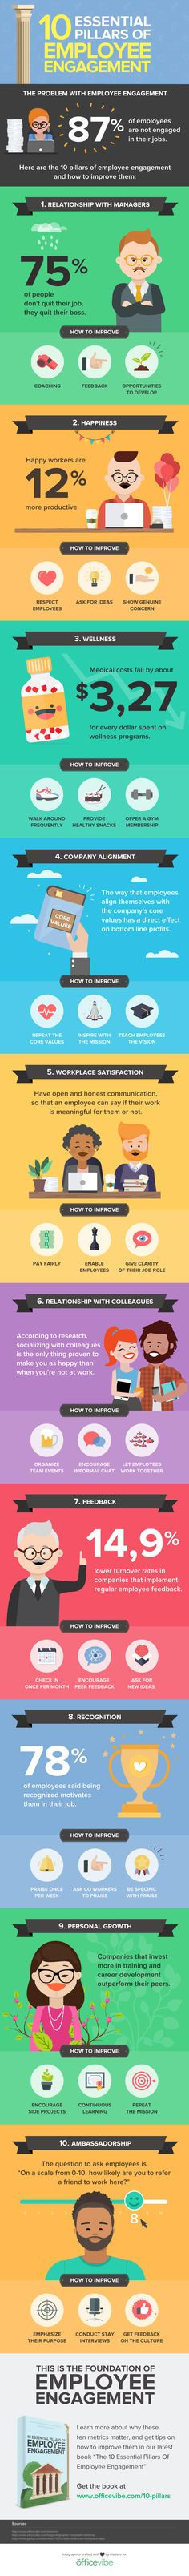 10 Keys to Increasing Employee Engagement; Discovered and categorized by Virtual Observer, the contact center's secret customer engagment weapon - http://www.csiworld.com